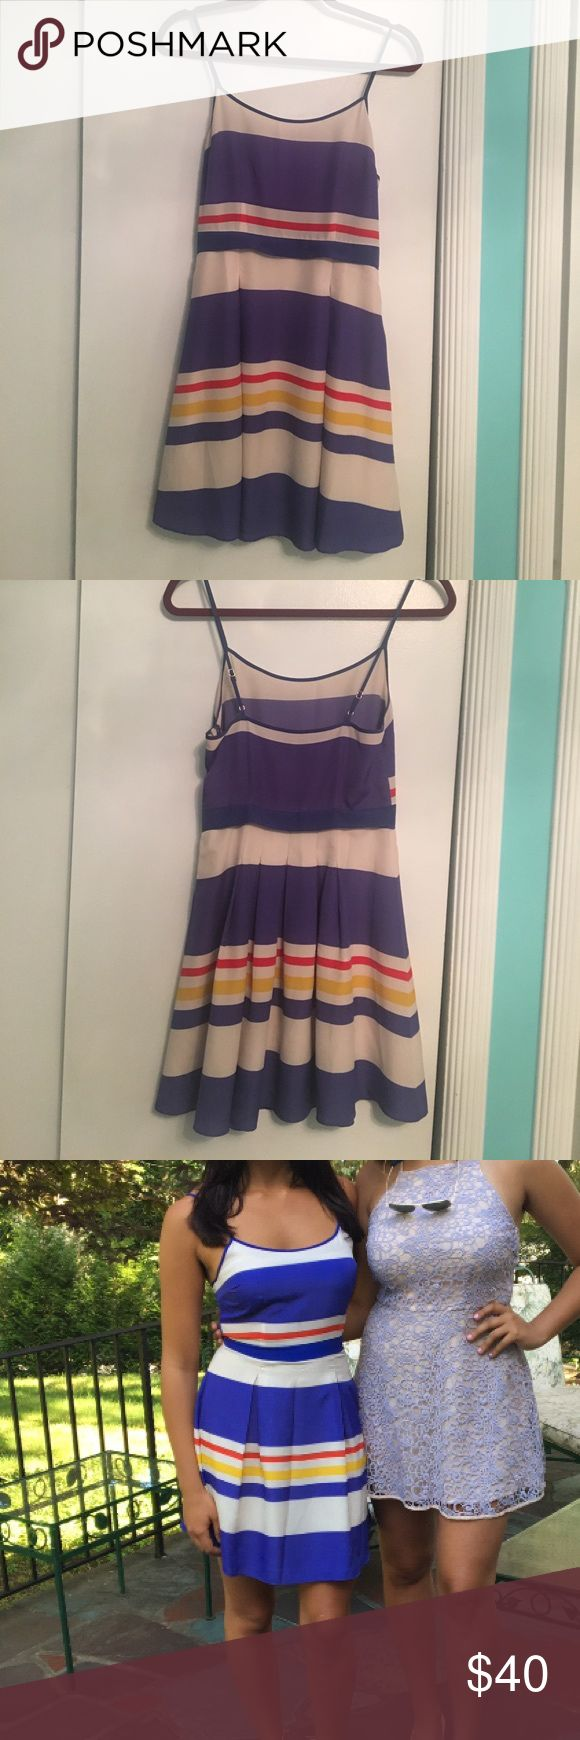 Nautical summer dress! Adorable, fun and flattering summer dress with adjustable spaghetti straps! Juicy Couture Dresses